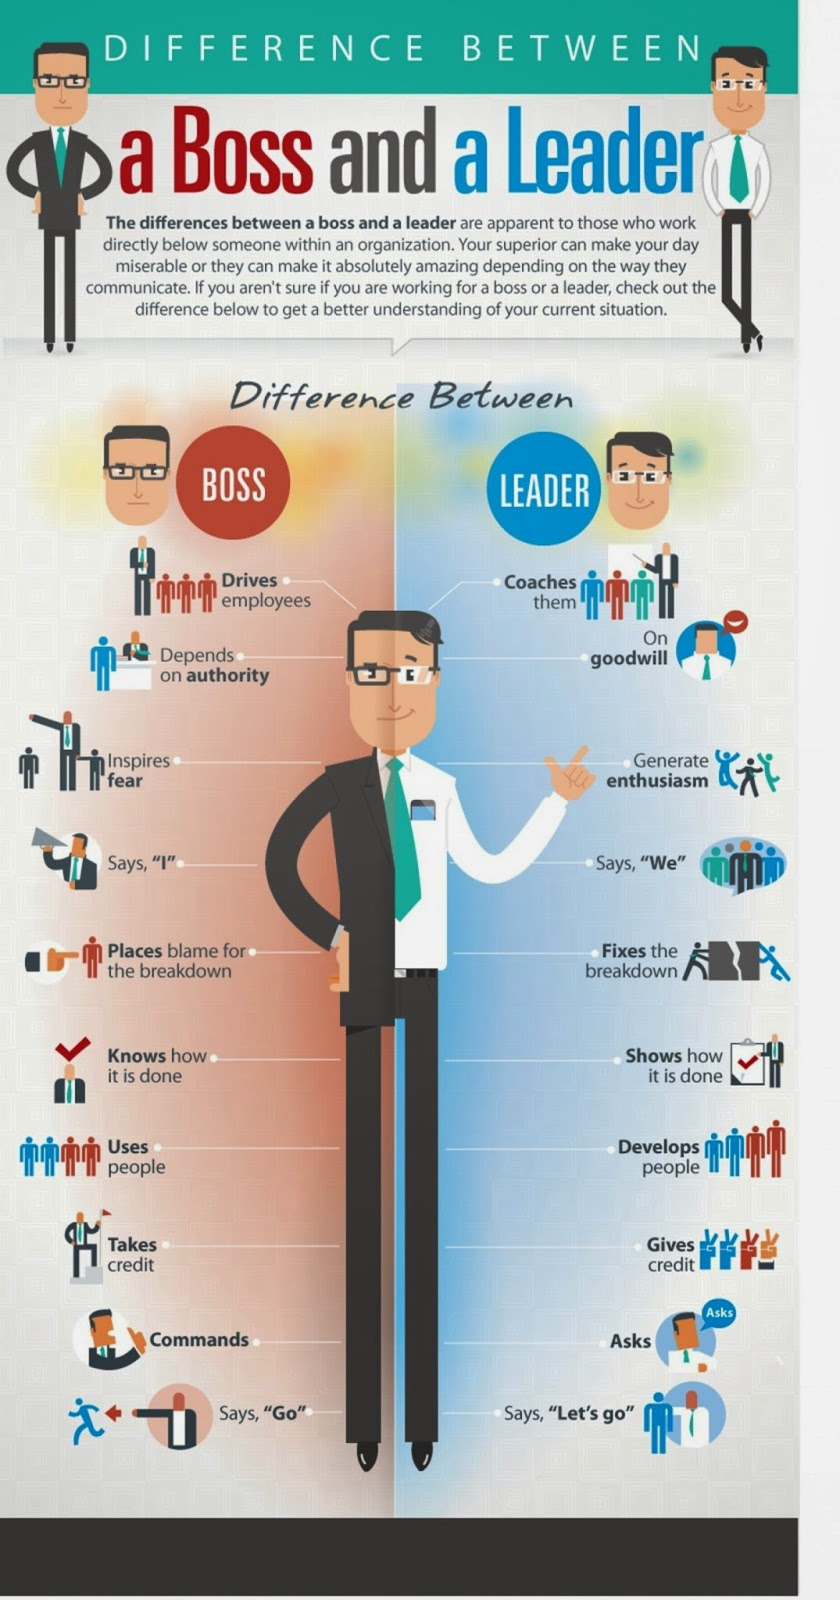 http://visual.ly/difference-between-boss-and-leader